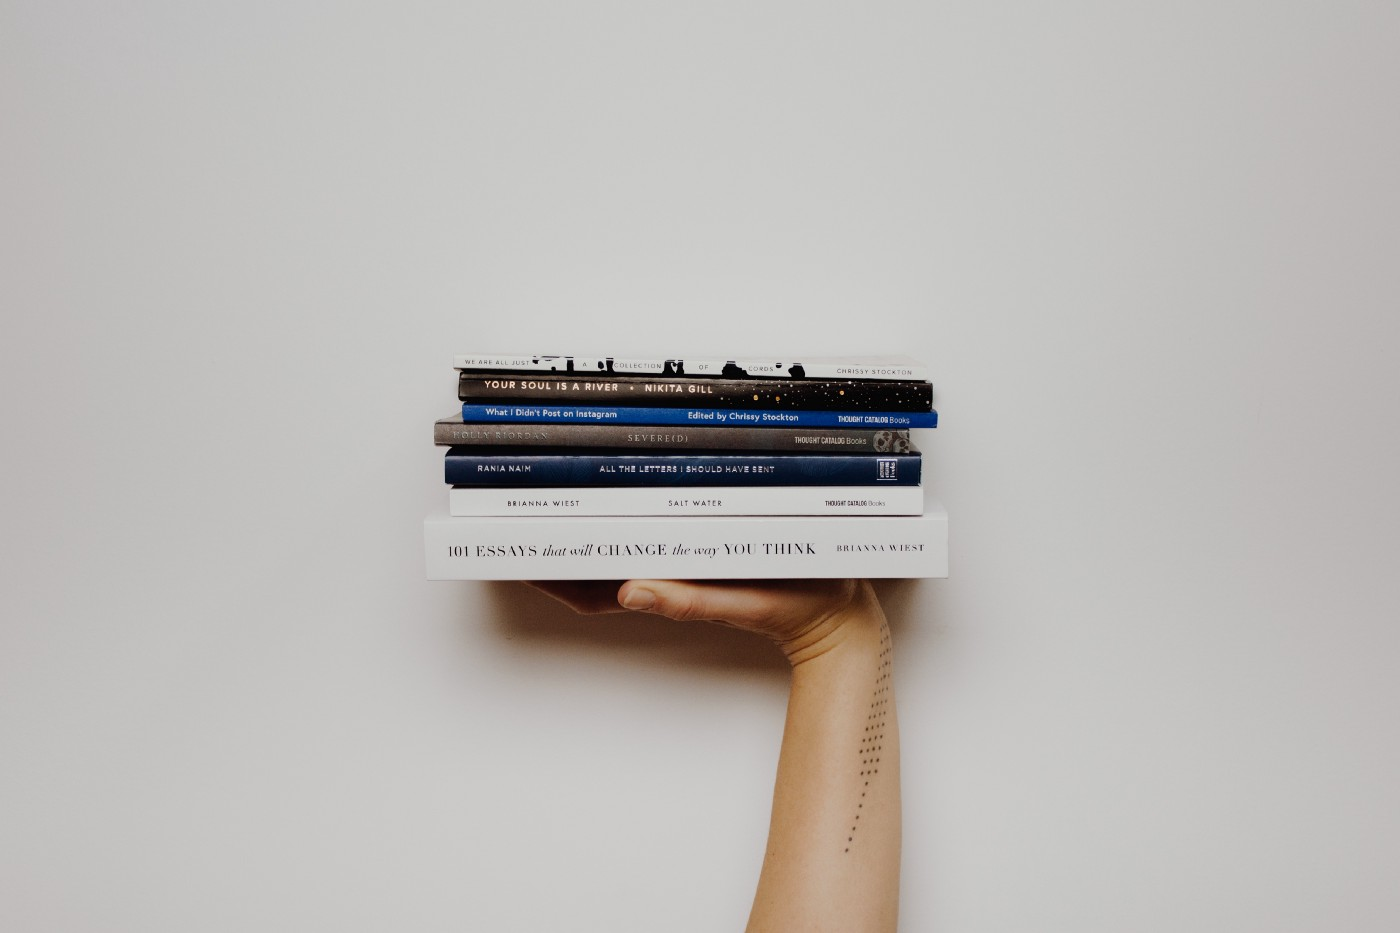 Hand thrusting up stack of books against white background.